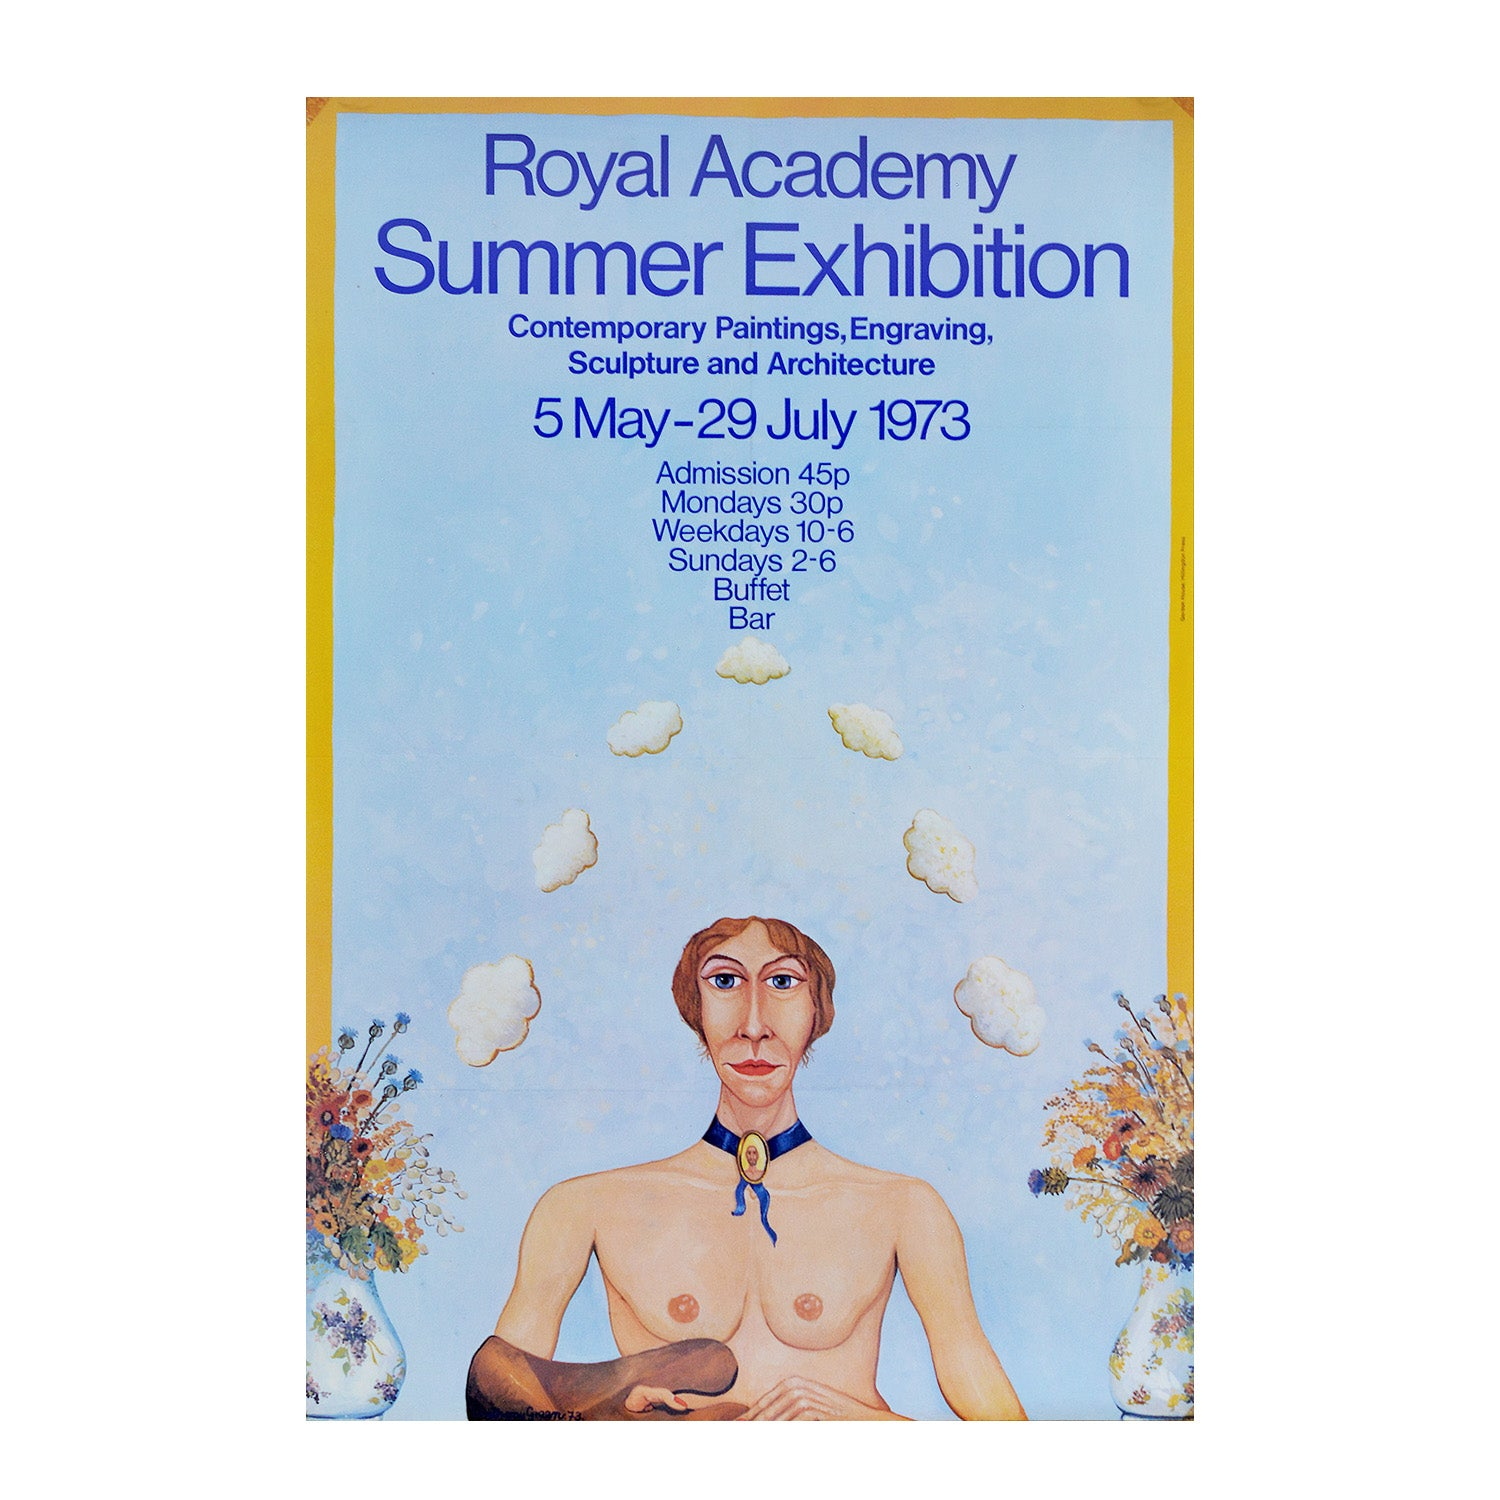 Royal Academy Summer Exhibition, 1973